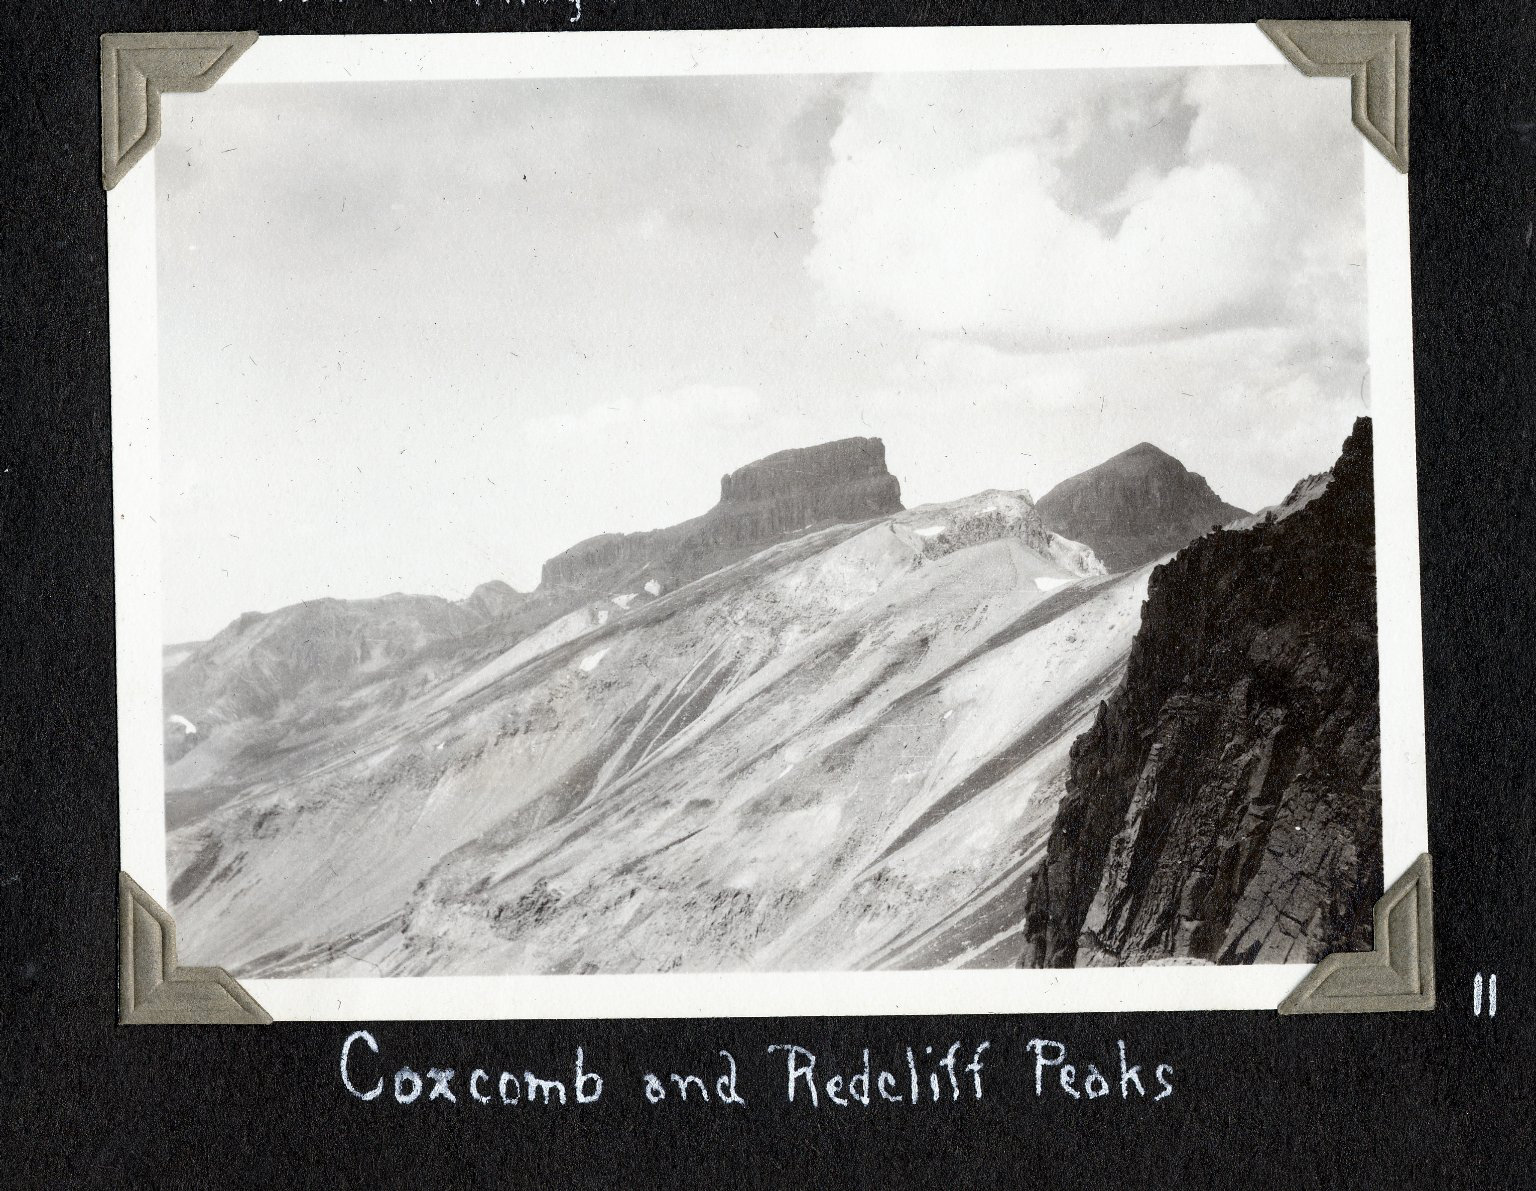 Redcliff and Coxcomb Peak